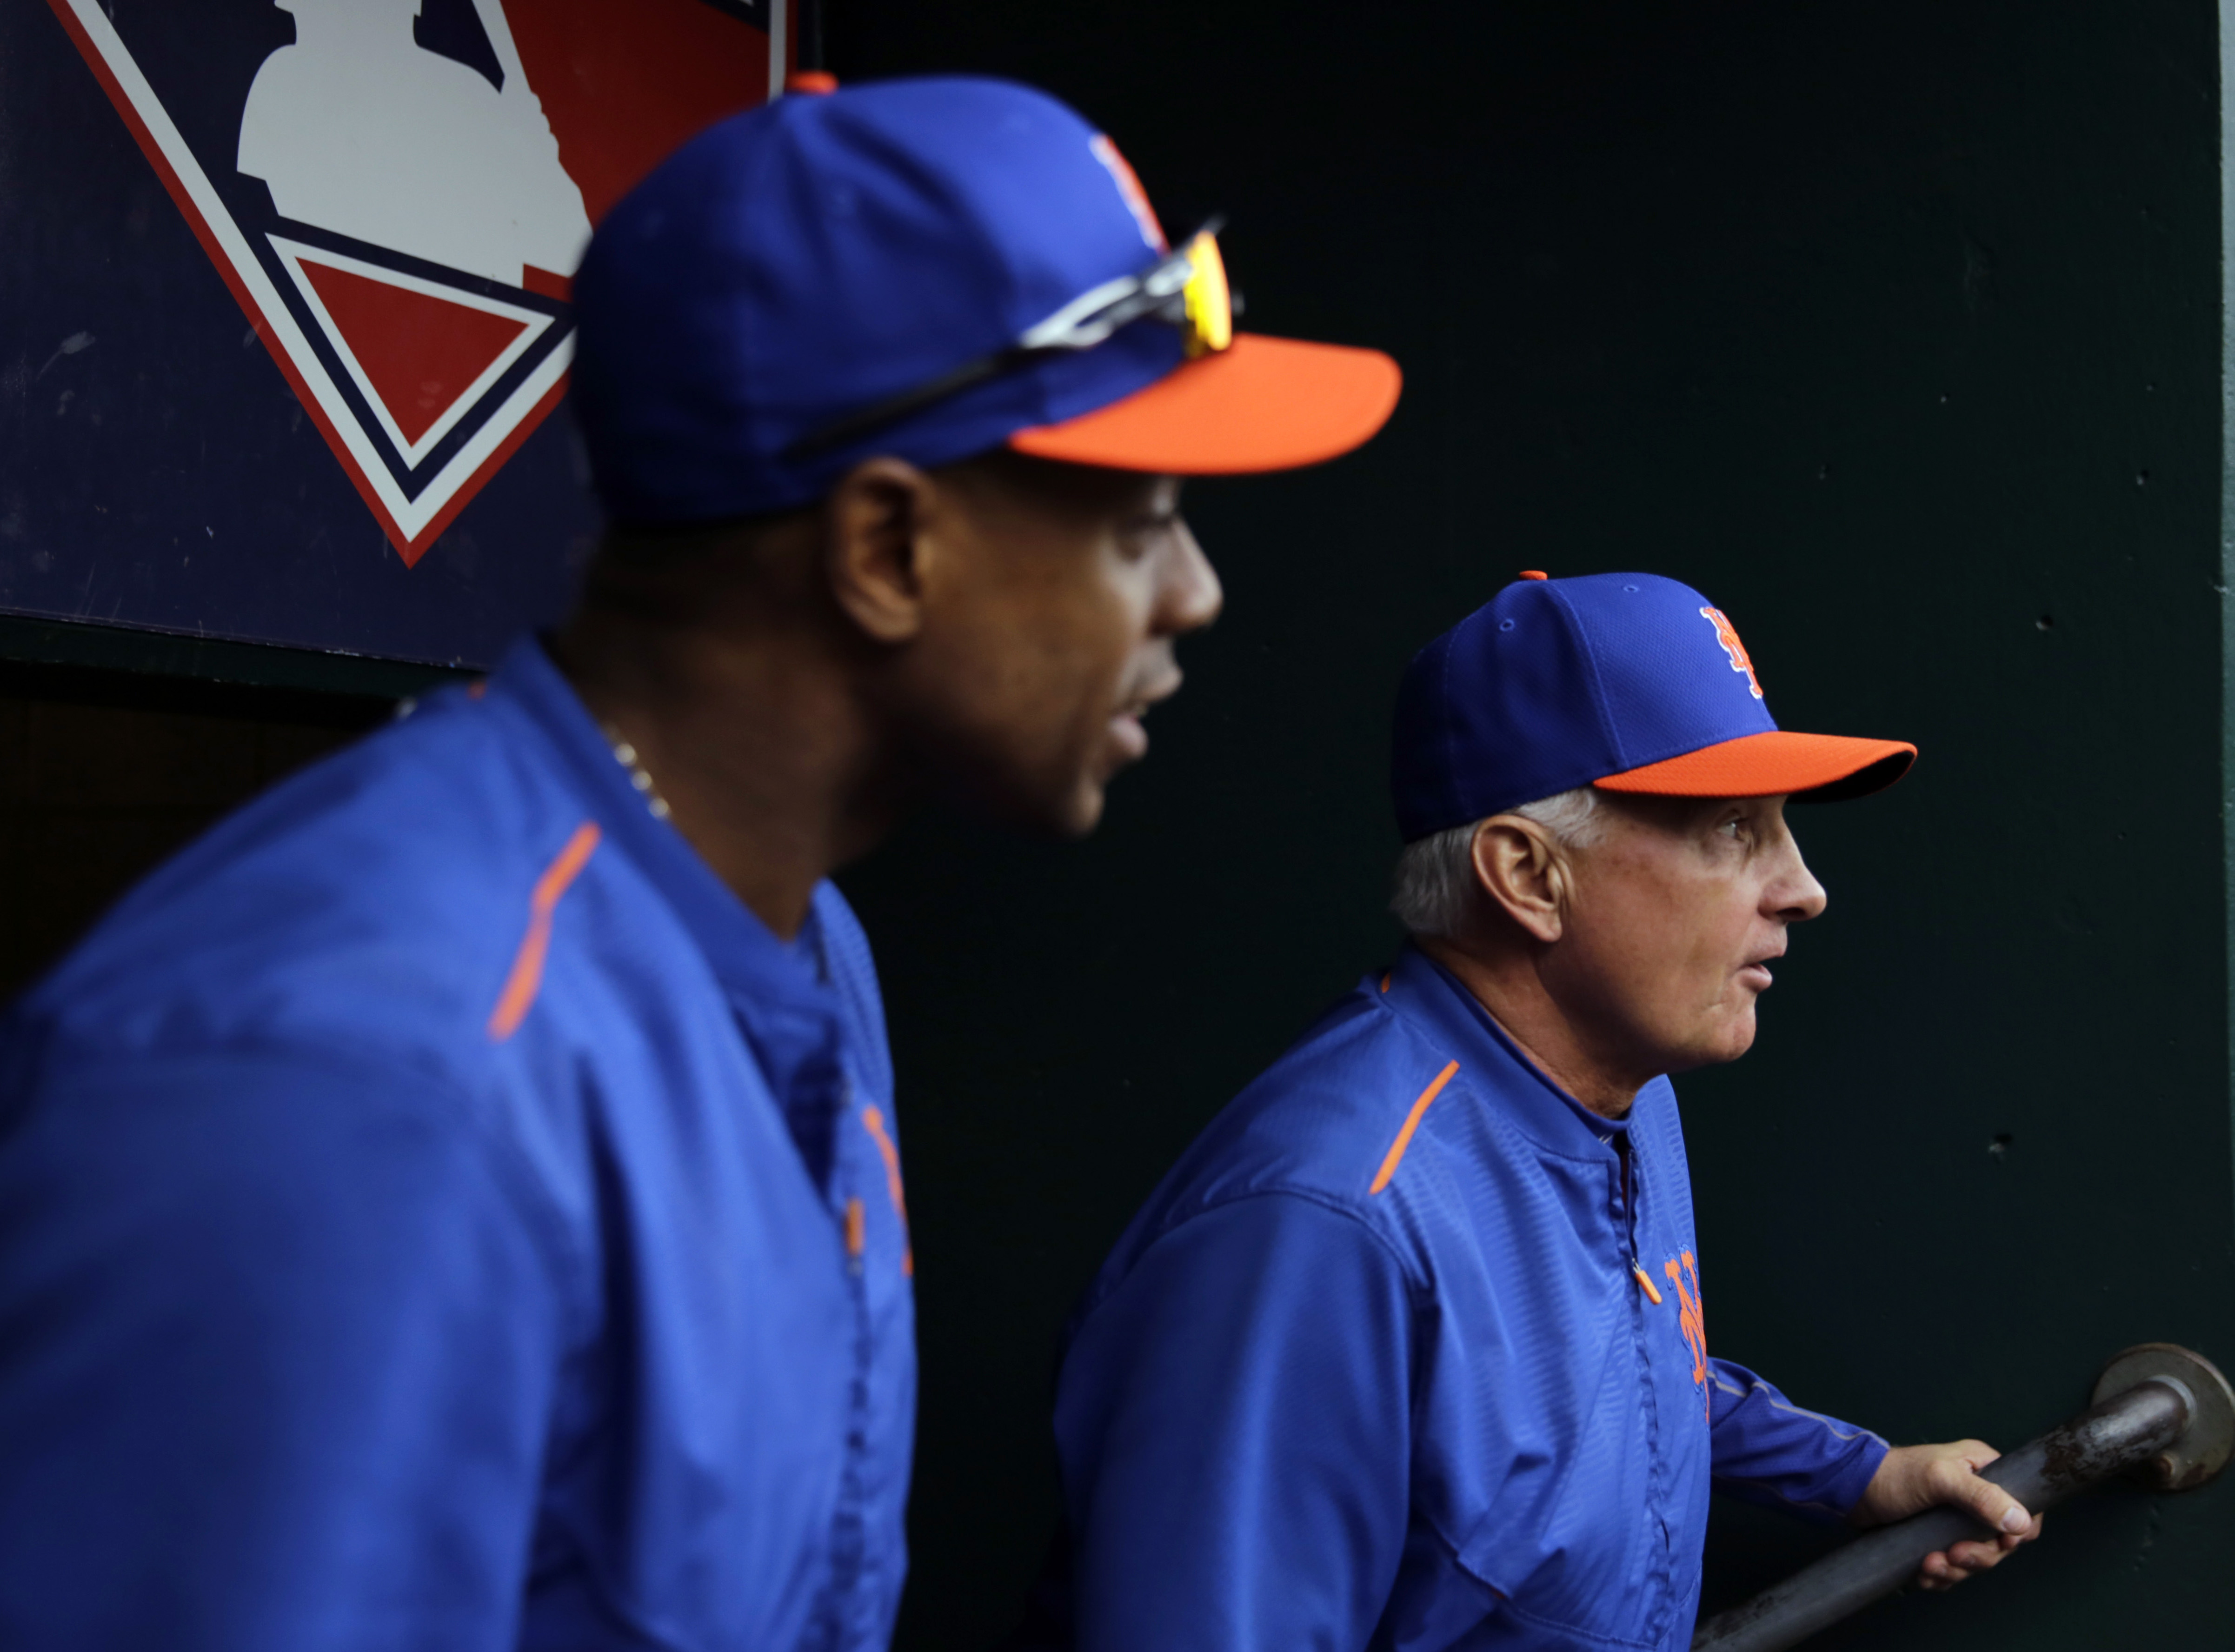 New York Mets manager Terry Collins and Curtis Granderson make their way to batting practice for the Major League Baseball World Series against the Kansas City Royals Monday, Oct. 26, 2015, in Kansas City, Mo. (AP Photo/David Goldman)